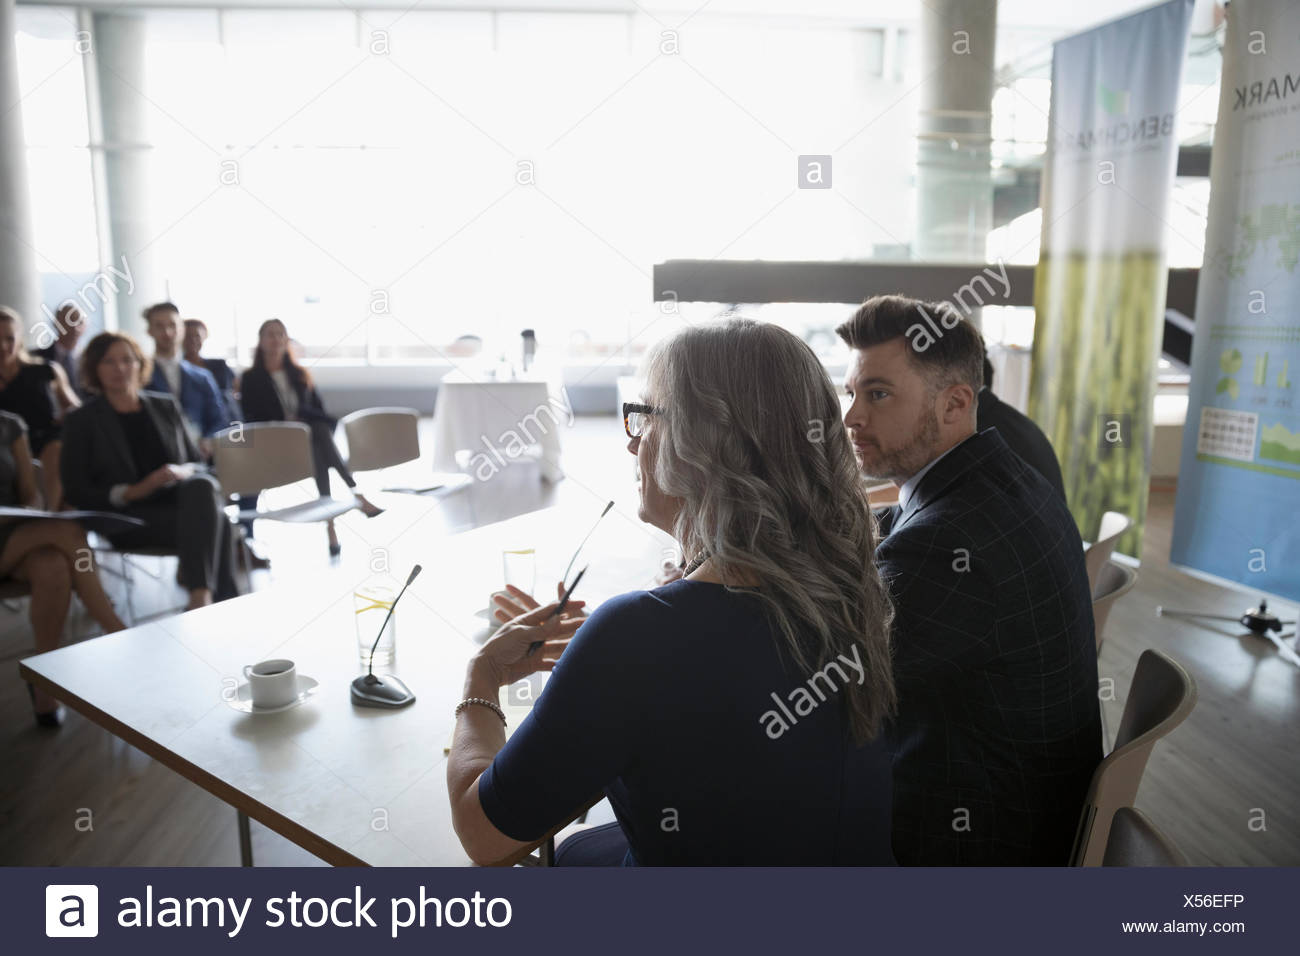 Businesswoman on conference panel talking to audience - Stock Image